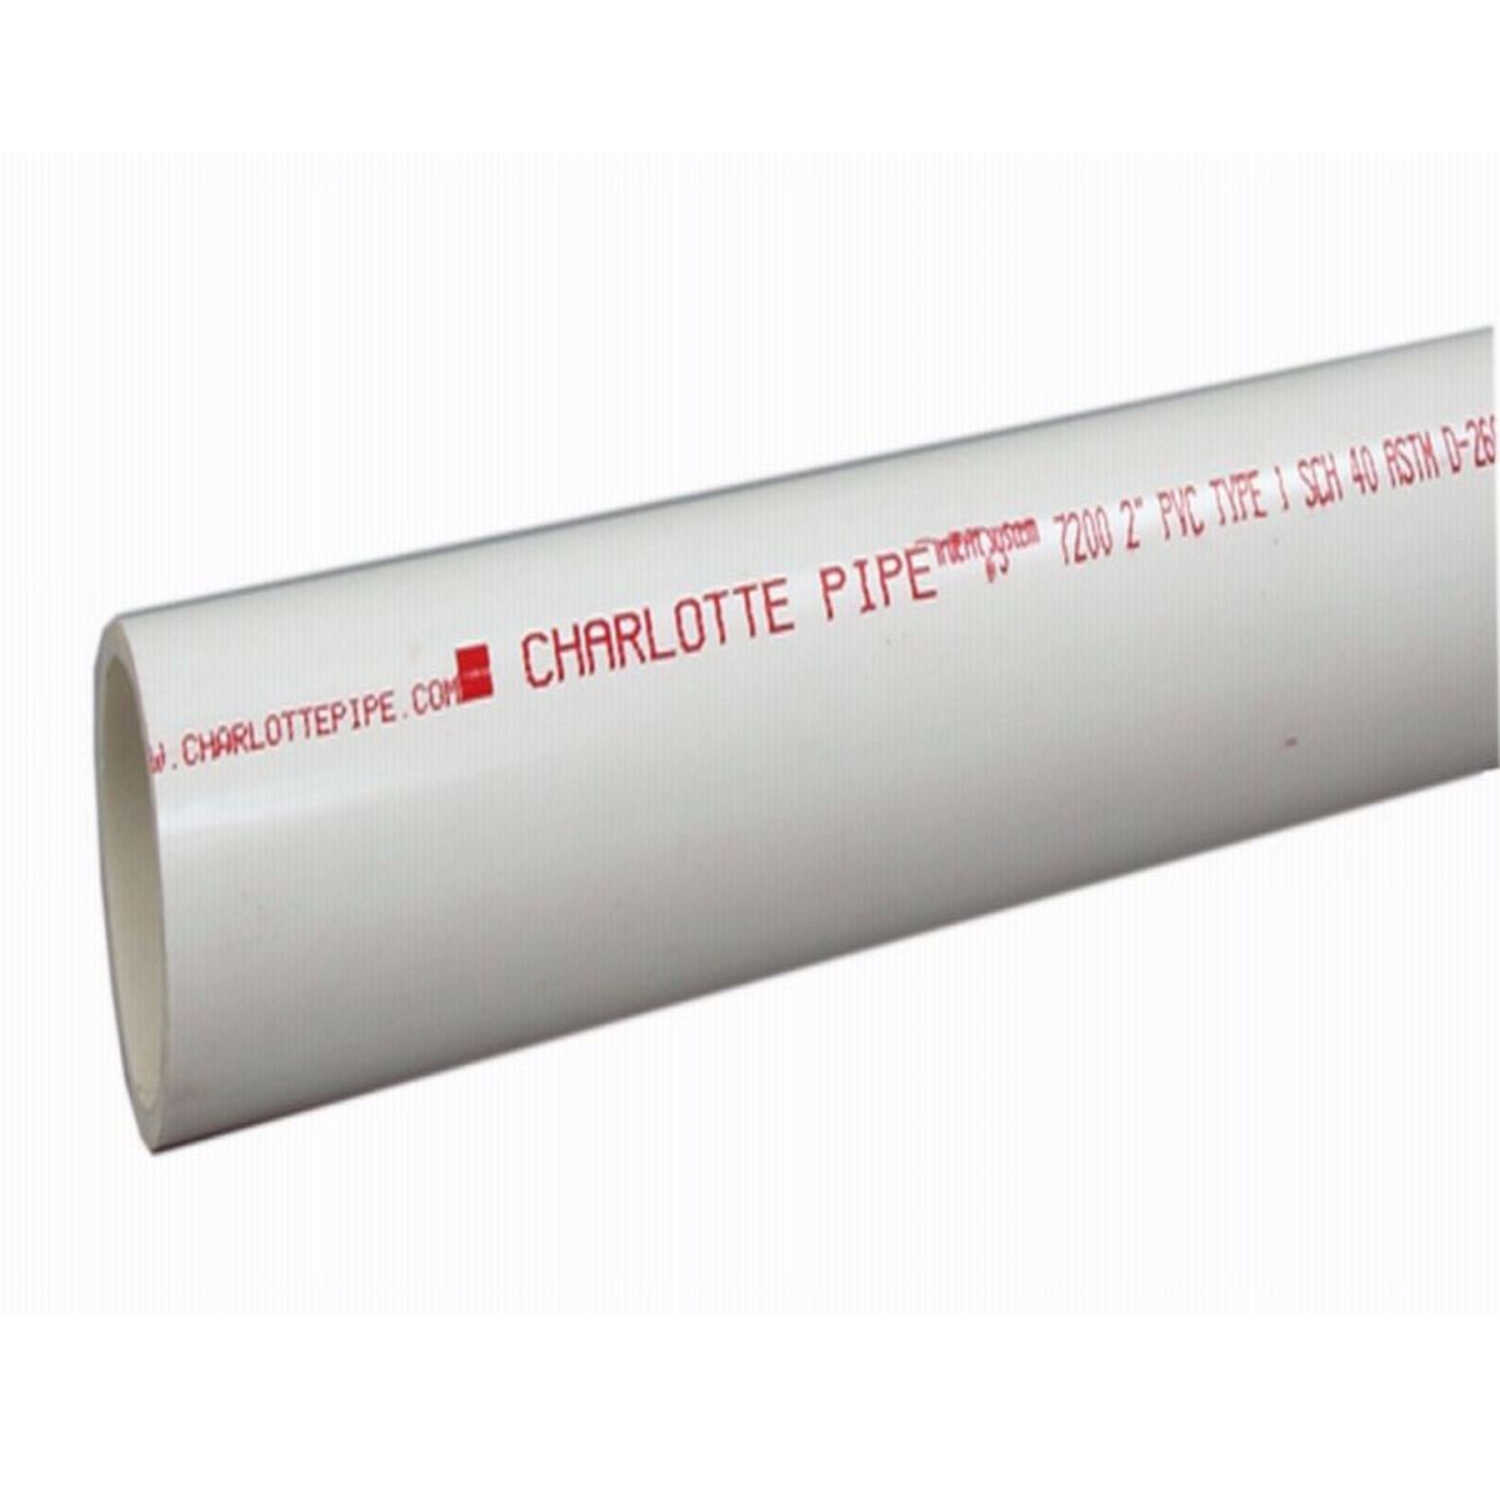 Charlotte Pipe  PVC Pipe  2 in. Dia. x 10 ft. L Plain End  Schedule 40  280 psi